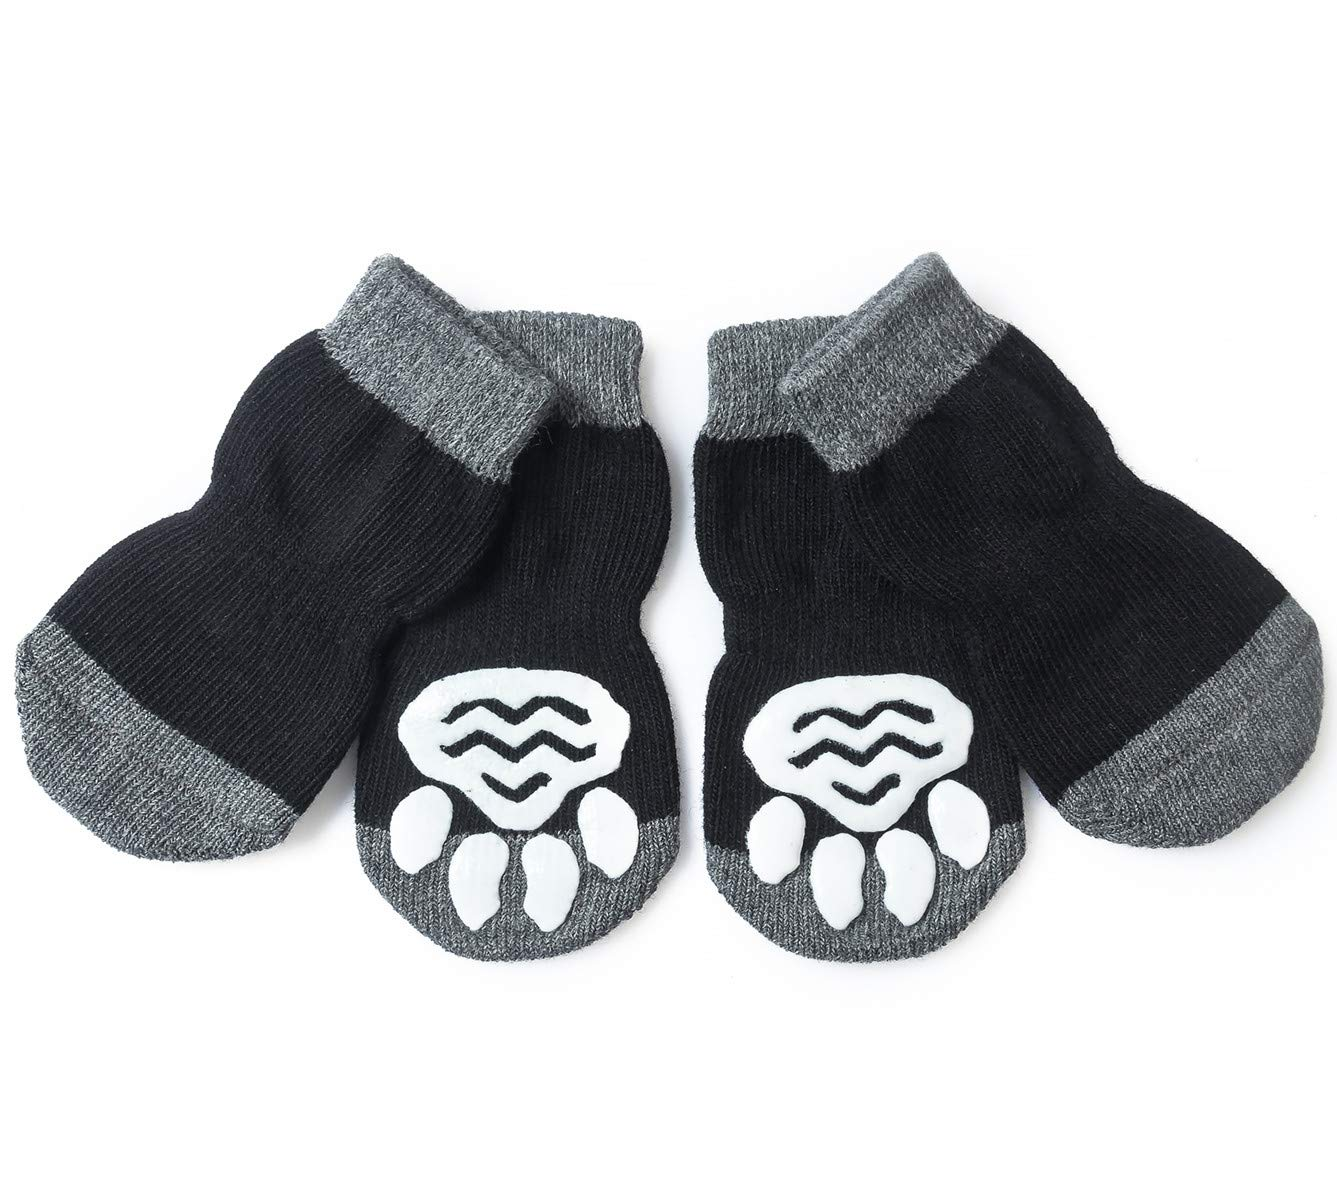 Pet Heroic 8 Sizes Anti-Slip Dog Socks Cat Socks Dog Cat Paw Protector with Rubber Reinforcement, Traction Control for Indoor Wear, Fit Extra Small to Extra Large Dogs Cats by Pet Heroic